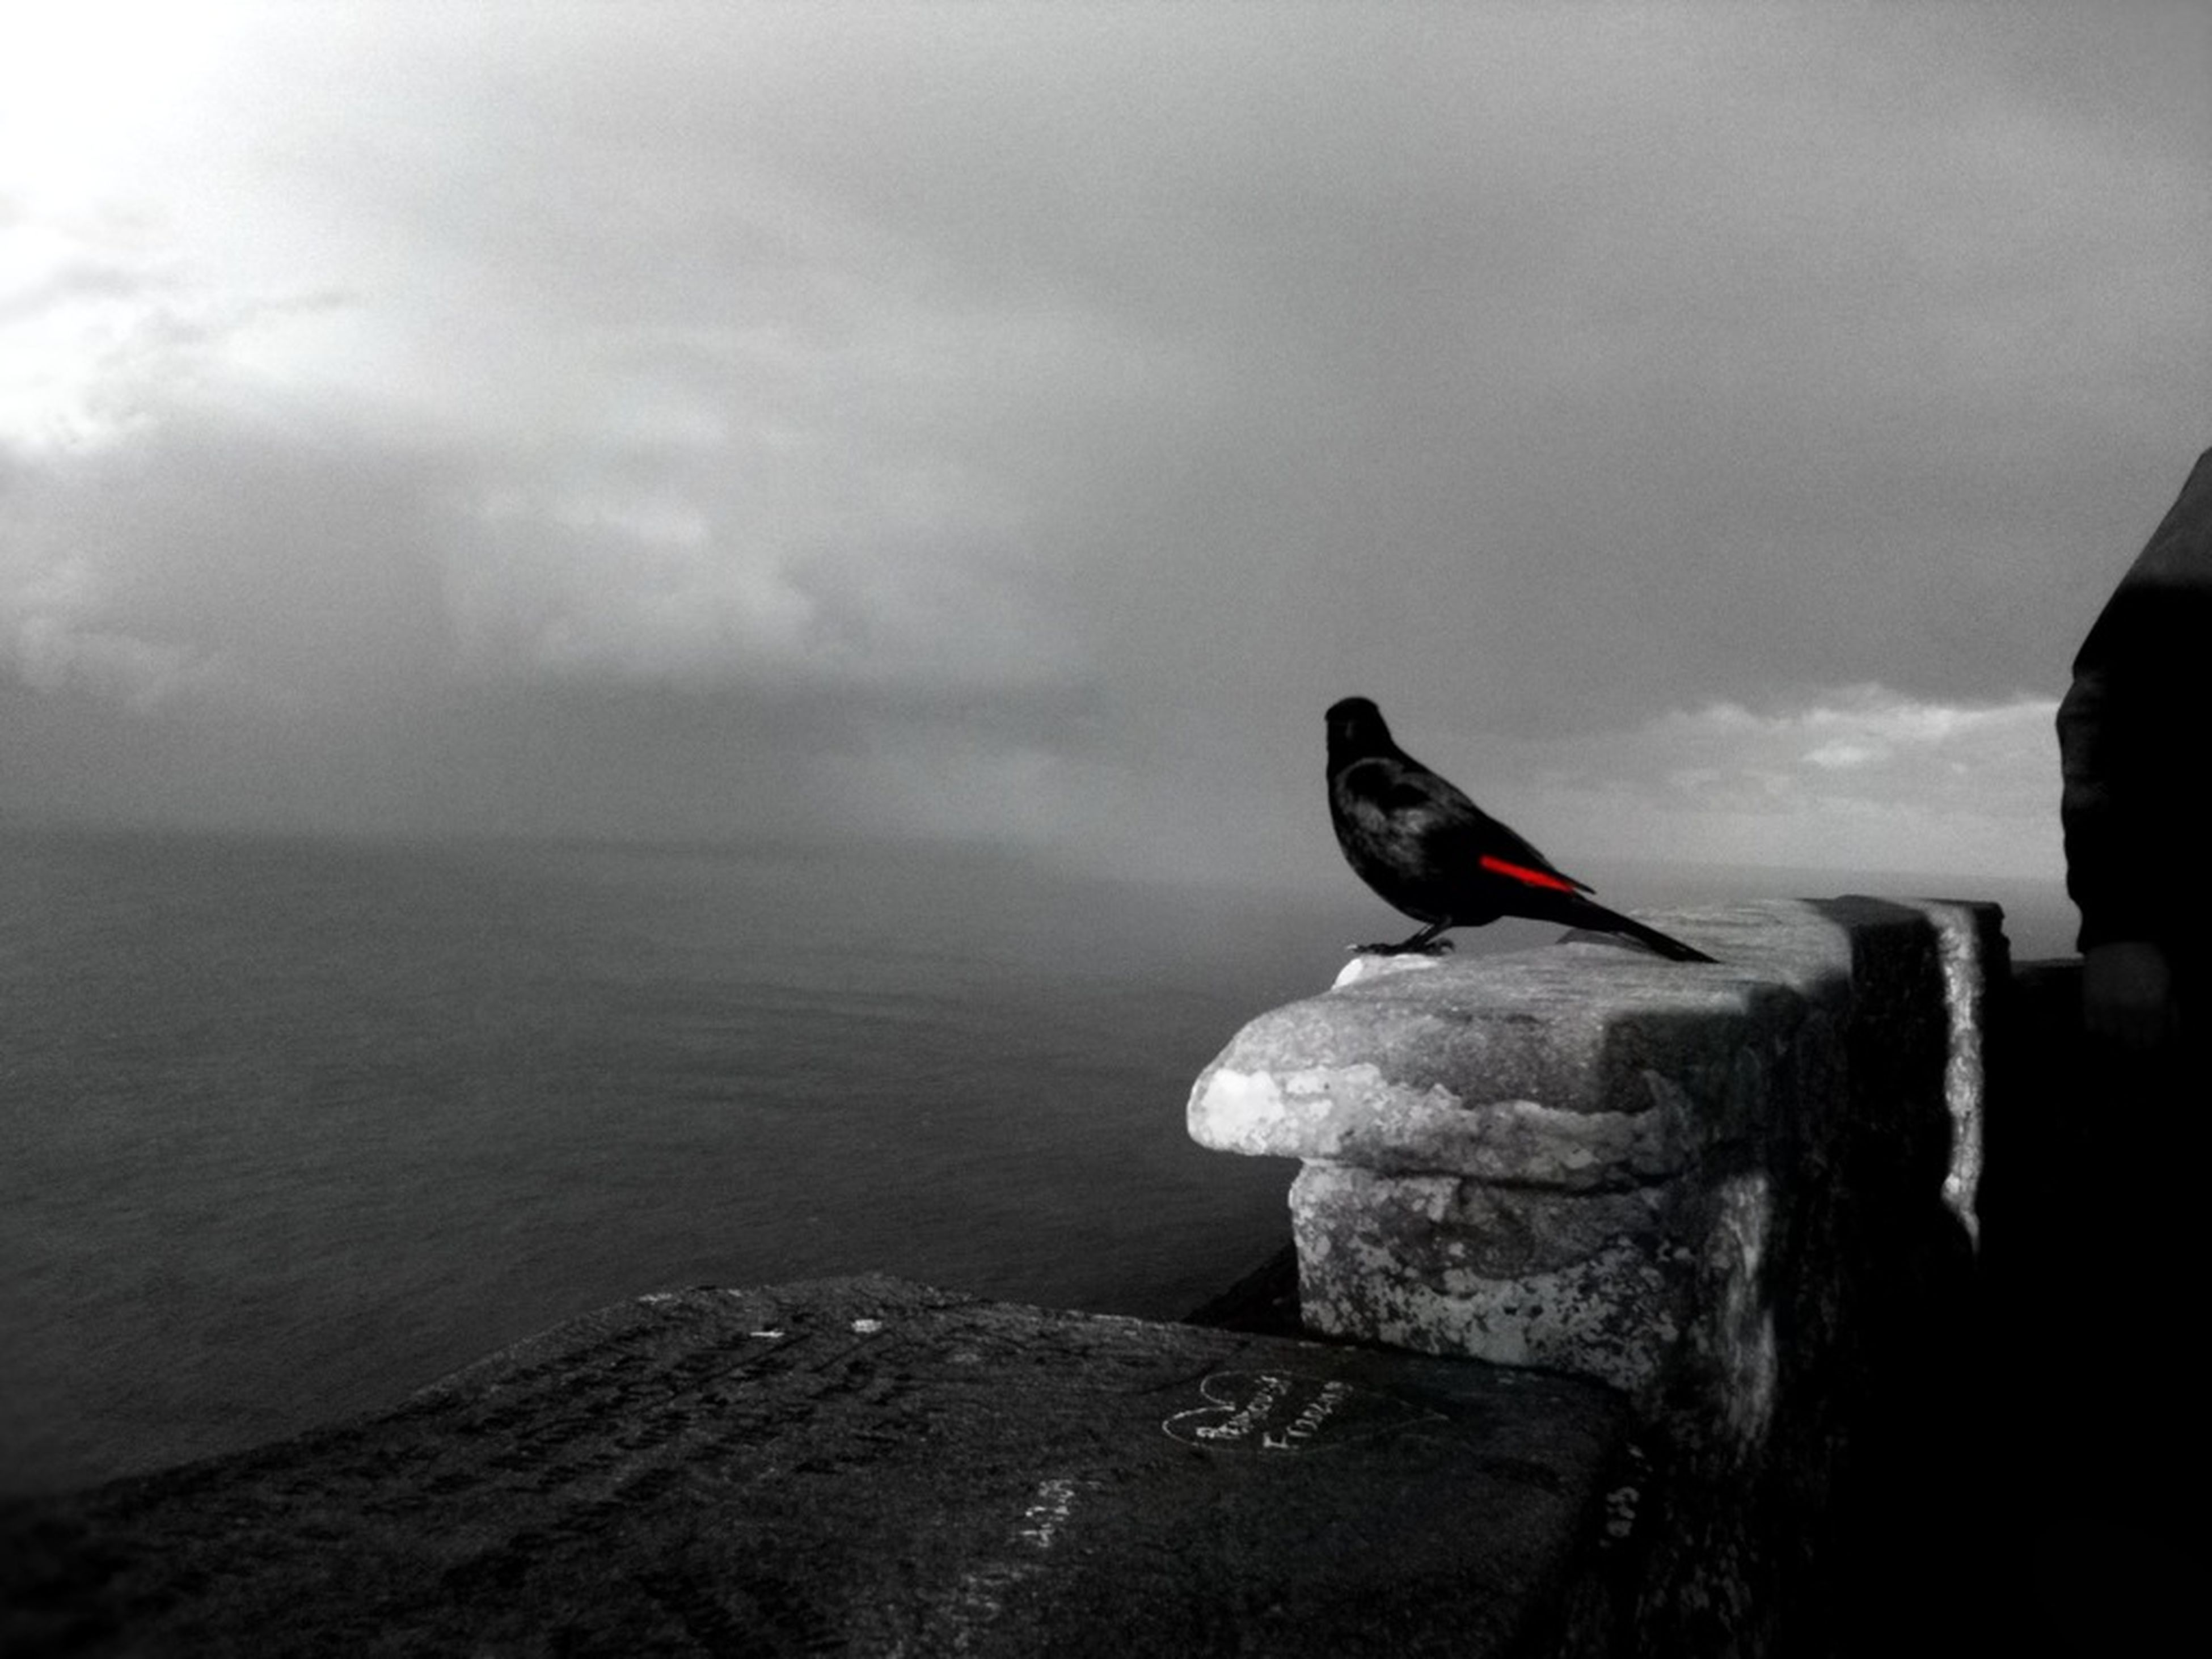 bird, one animal, sky, sea, water, animal themes, animals in the wild, nature, perching, rock - object, wildlife, beauty in nature, cloud - sky, tranquility, tranquil scene, full length, horizon over water, day, outdoors, scenics